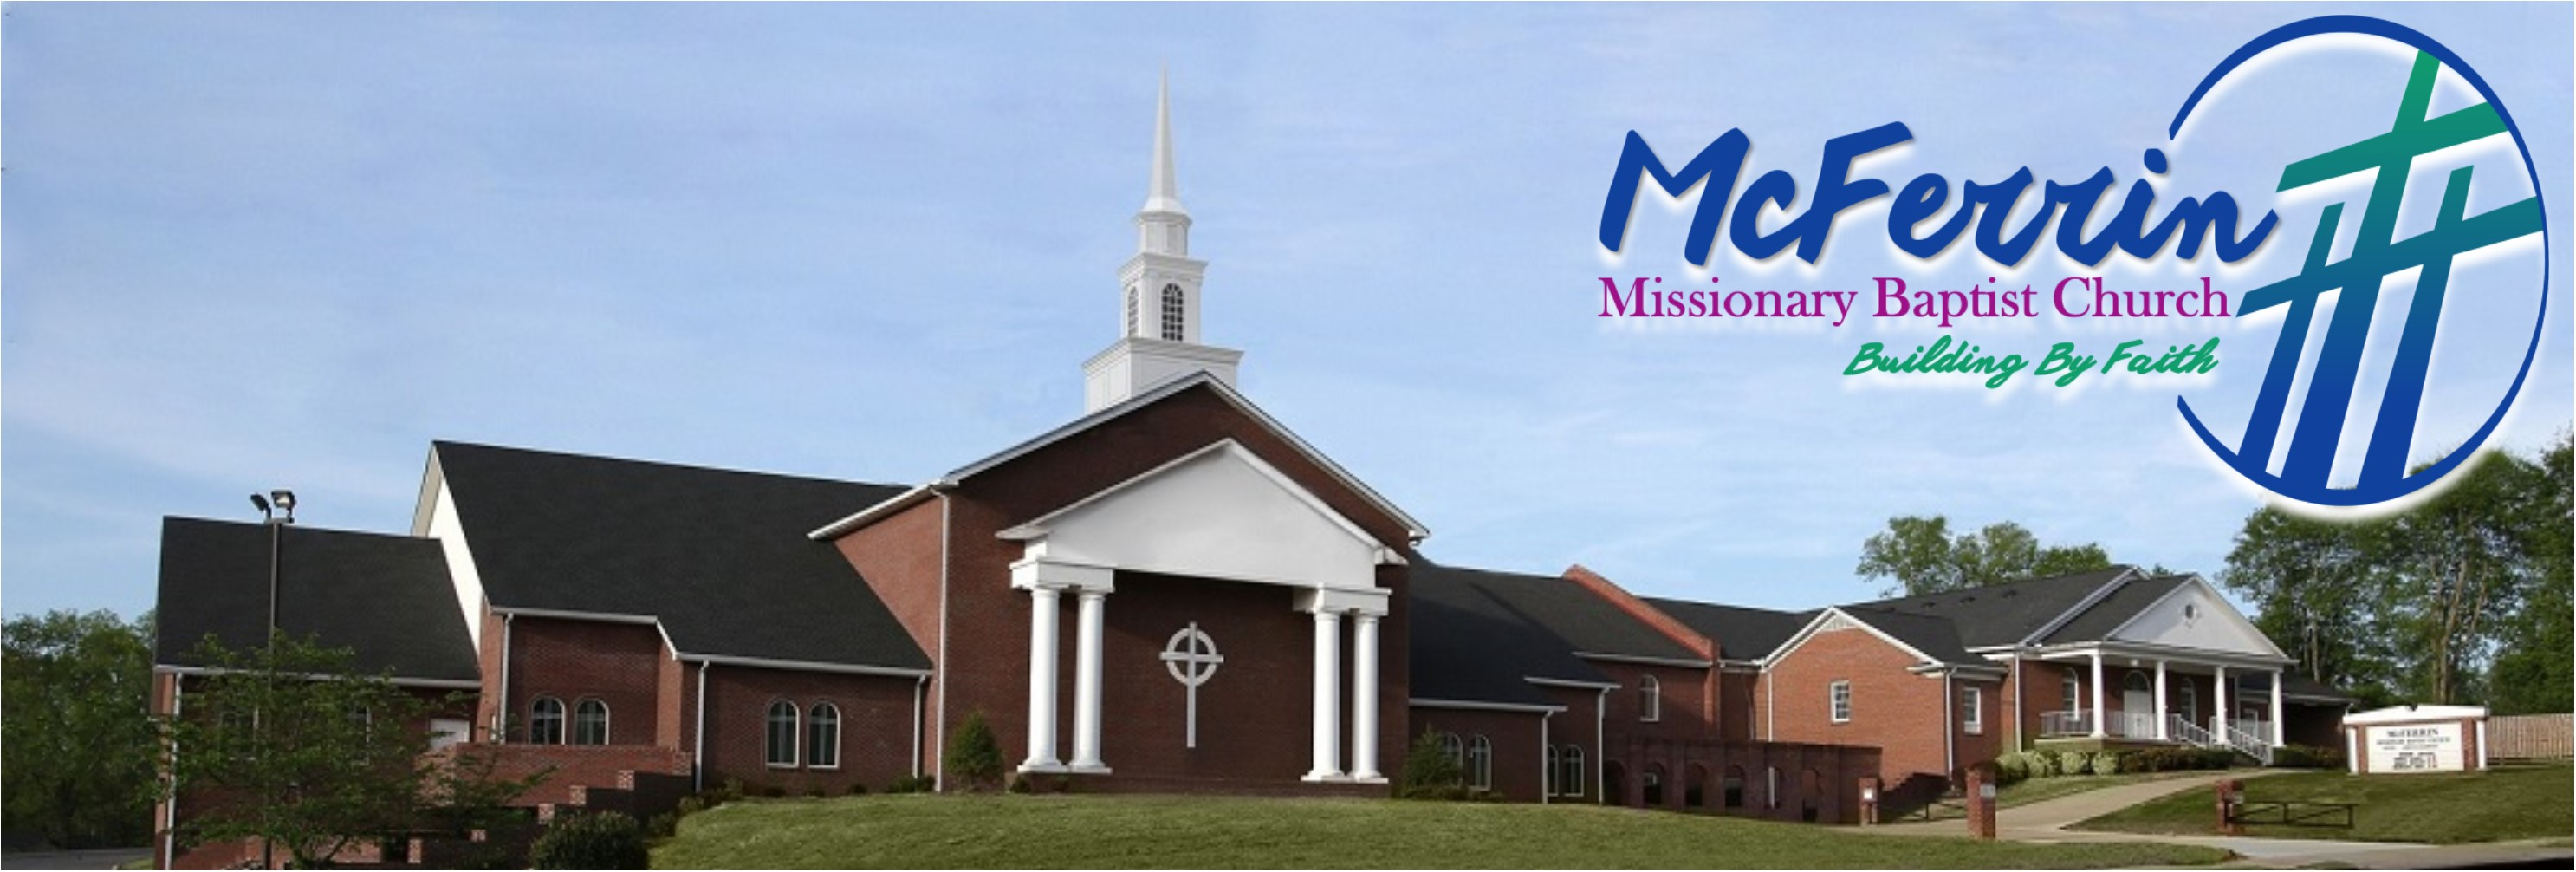 McFerrin Missionary Baptist Church